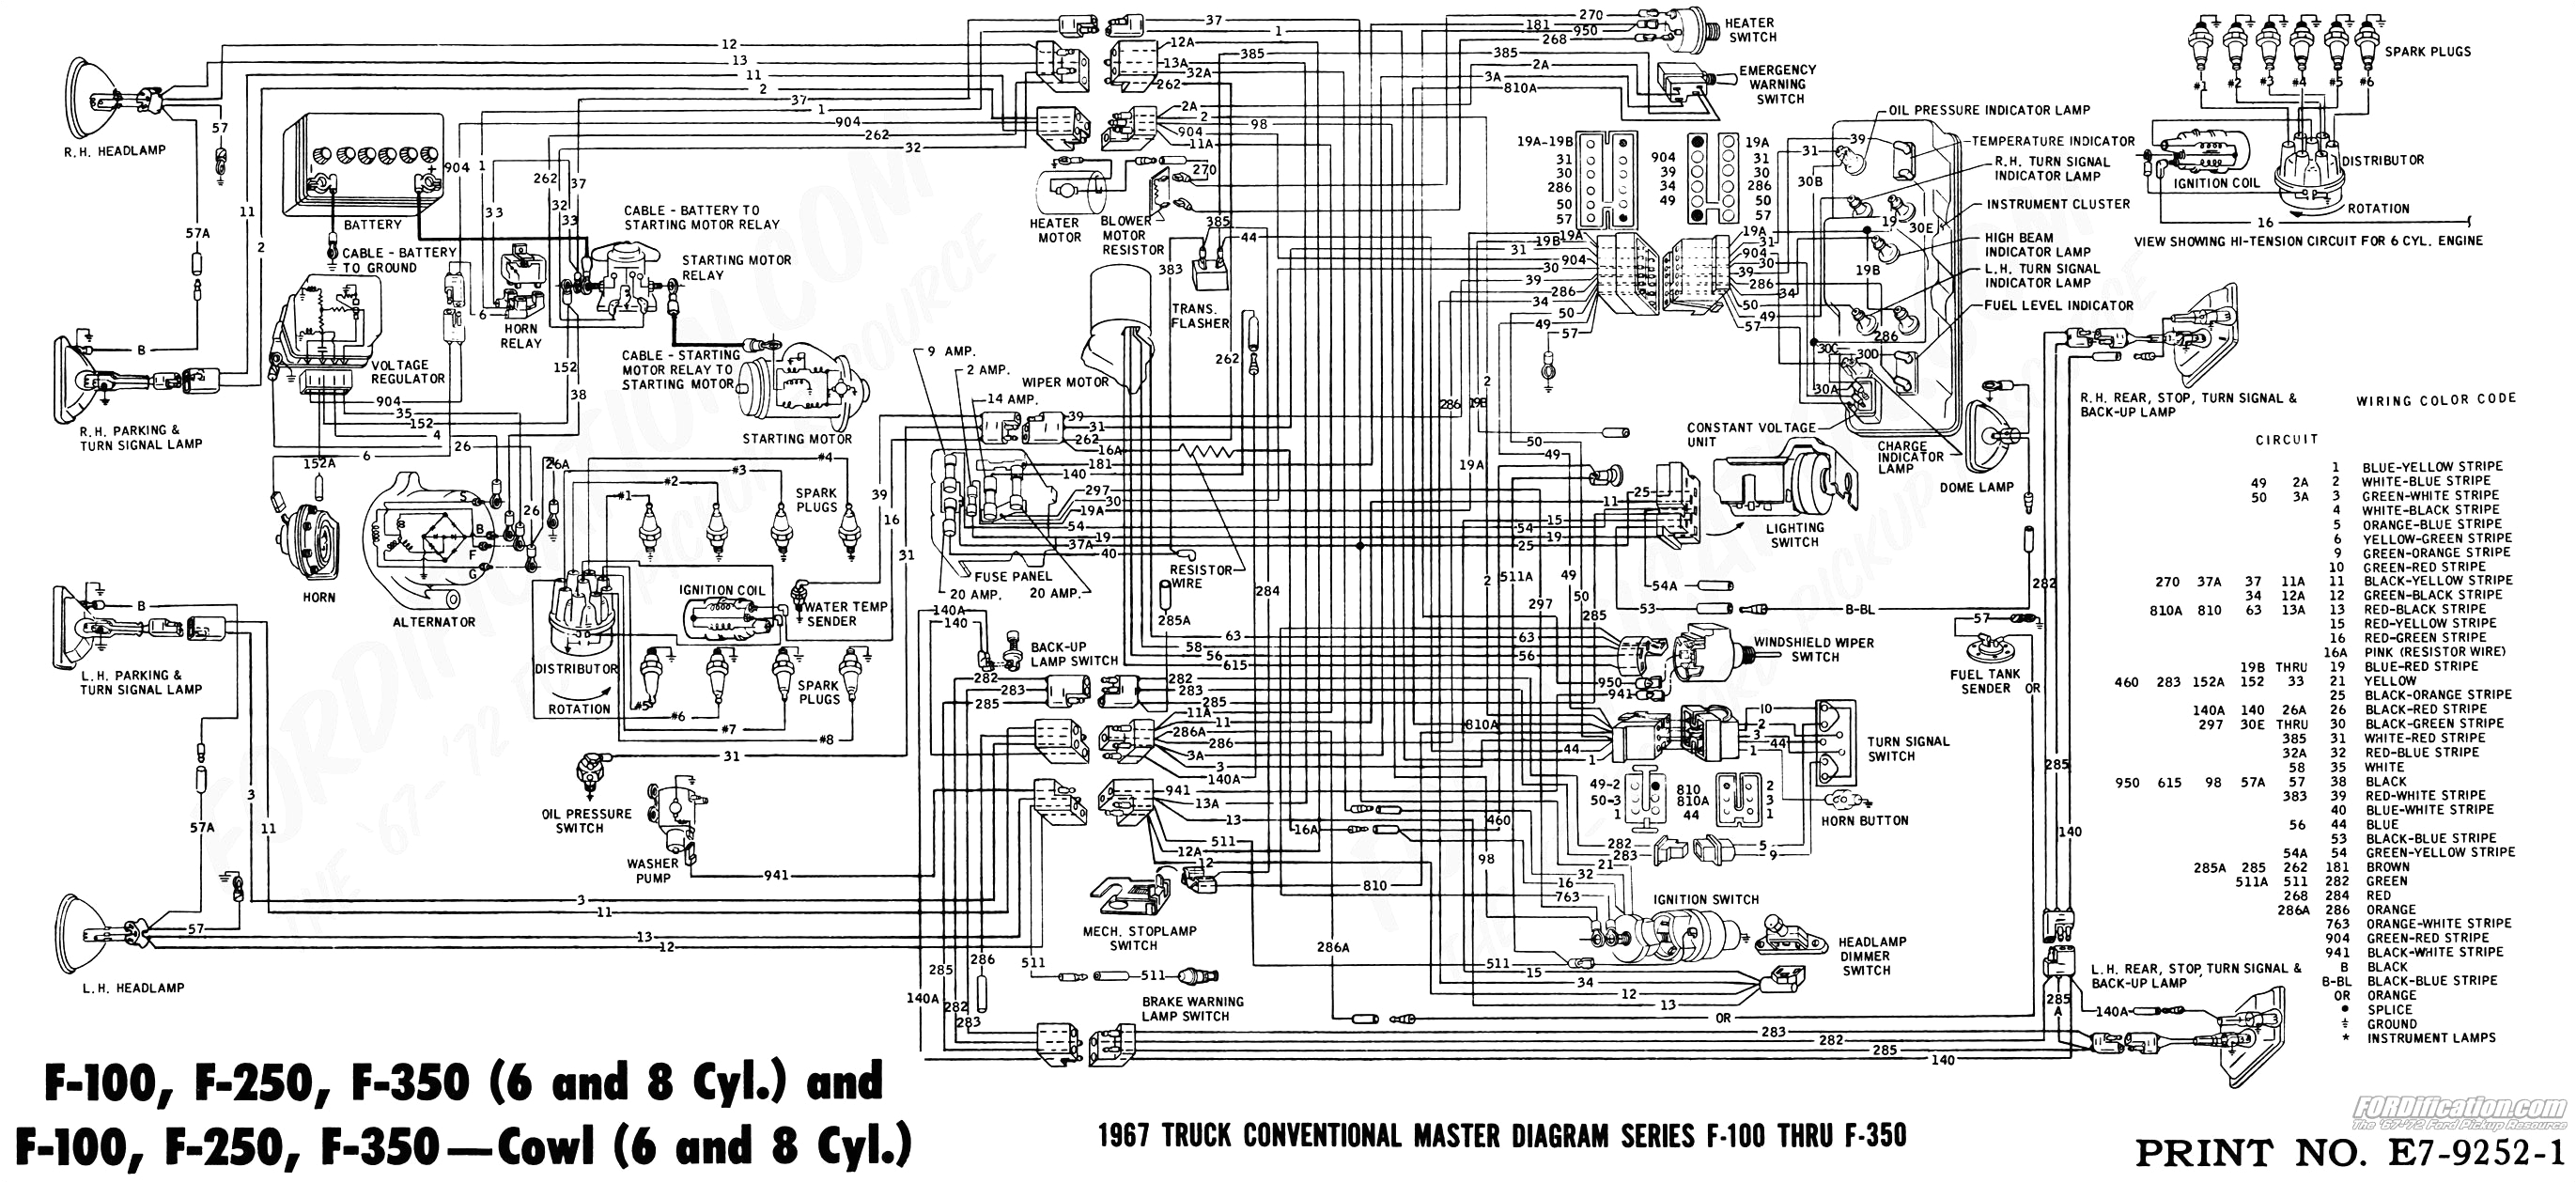 1992 f150 wiring diagram wiring diagram expert ignition wiring for 1992 ford f 150